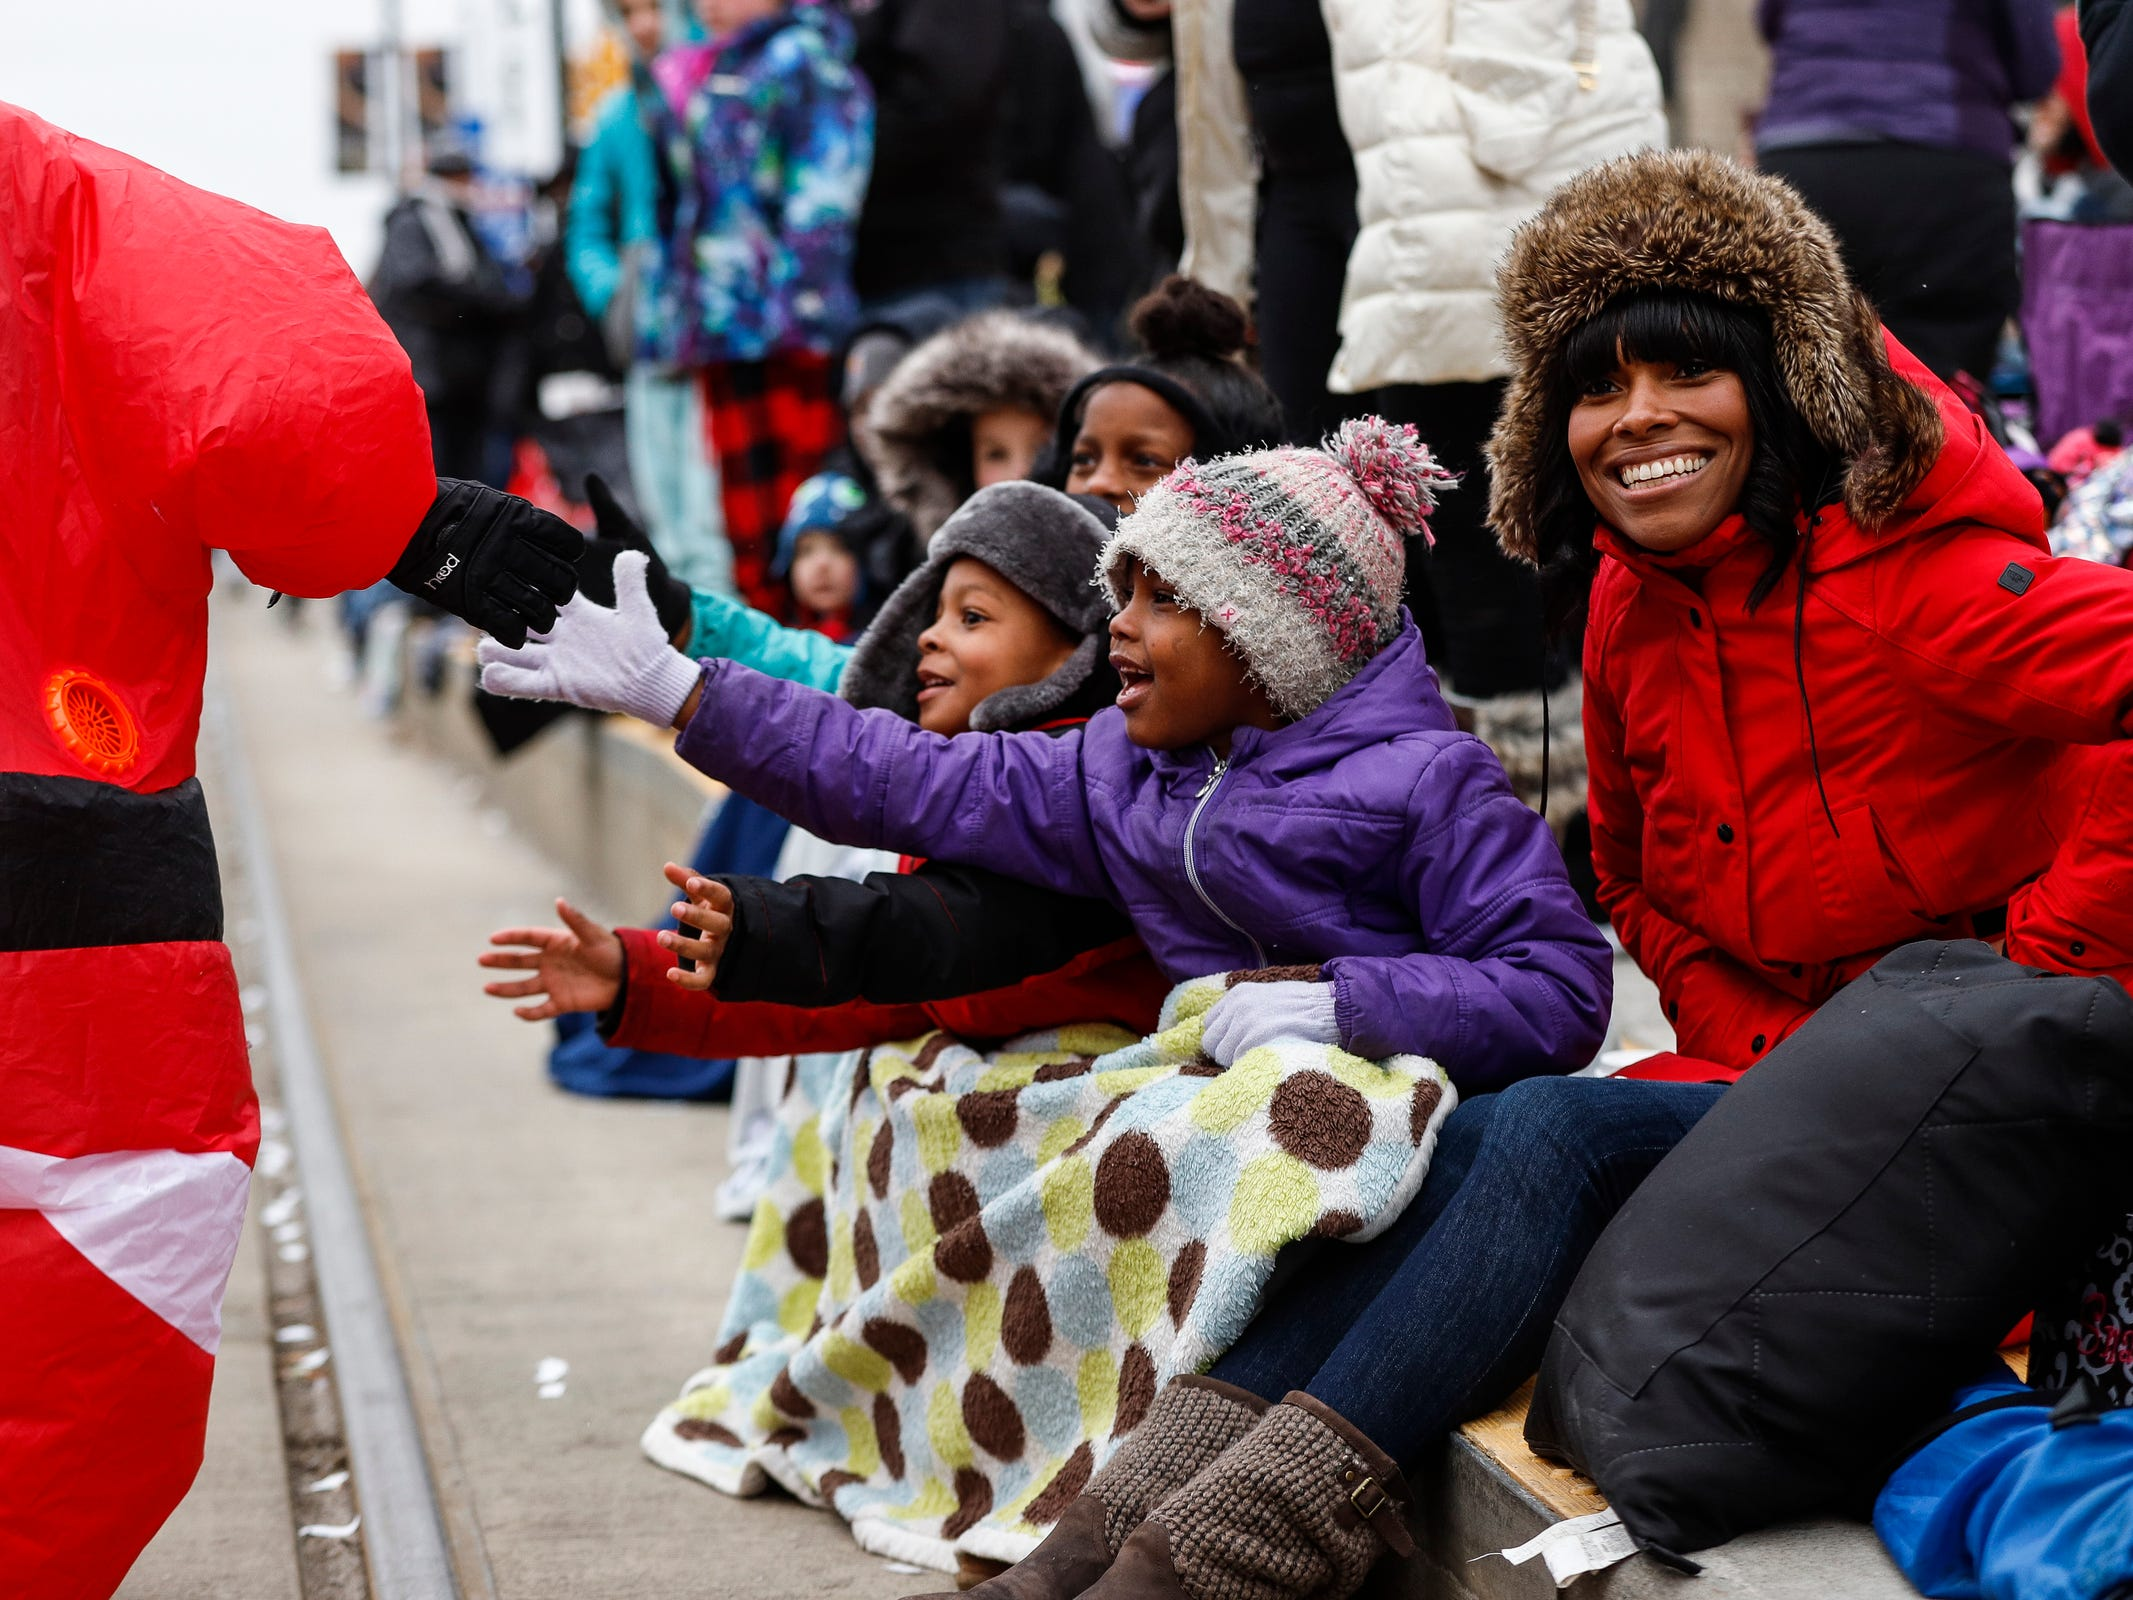 From center left, Taliyah Jones, 11, Jeremiah Jones, 5,  Quamiya Walker, 6, all of Detroit and their aunt Nichole Jones of Fraster, cheer for Turkey Trot runners on  Woodward Avenue in Detroit, Thursday, Nov. 22, 2018.